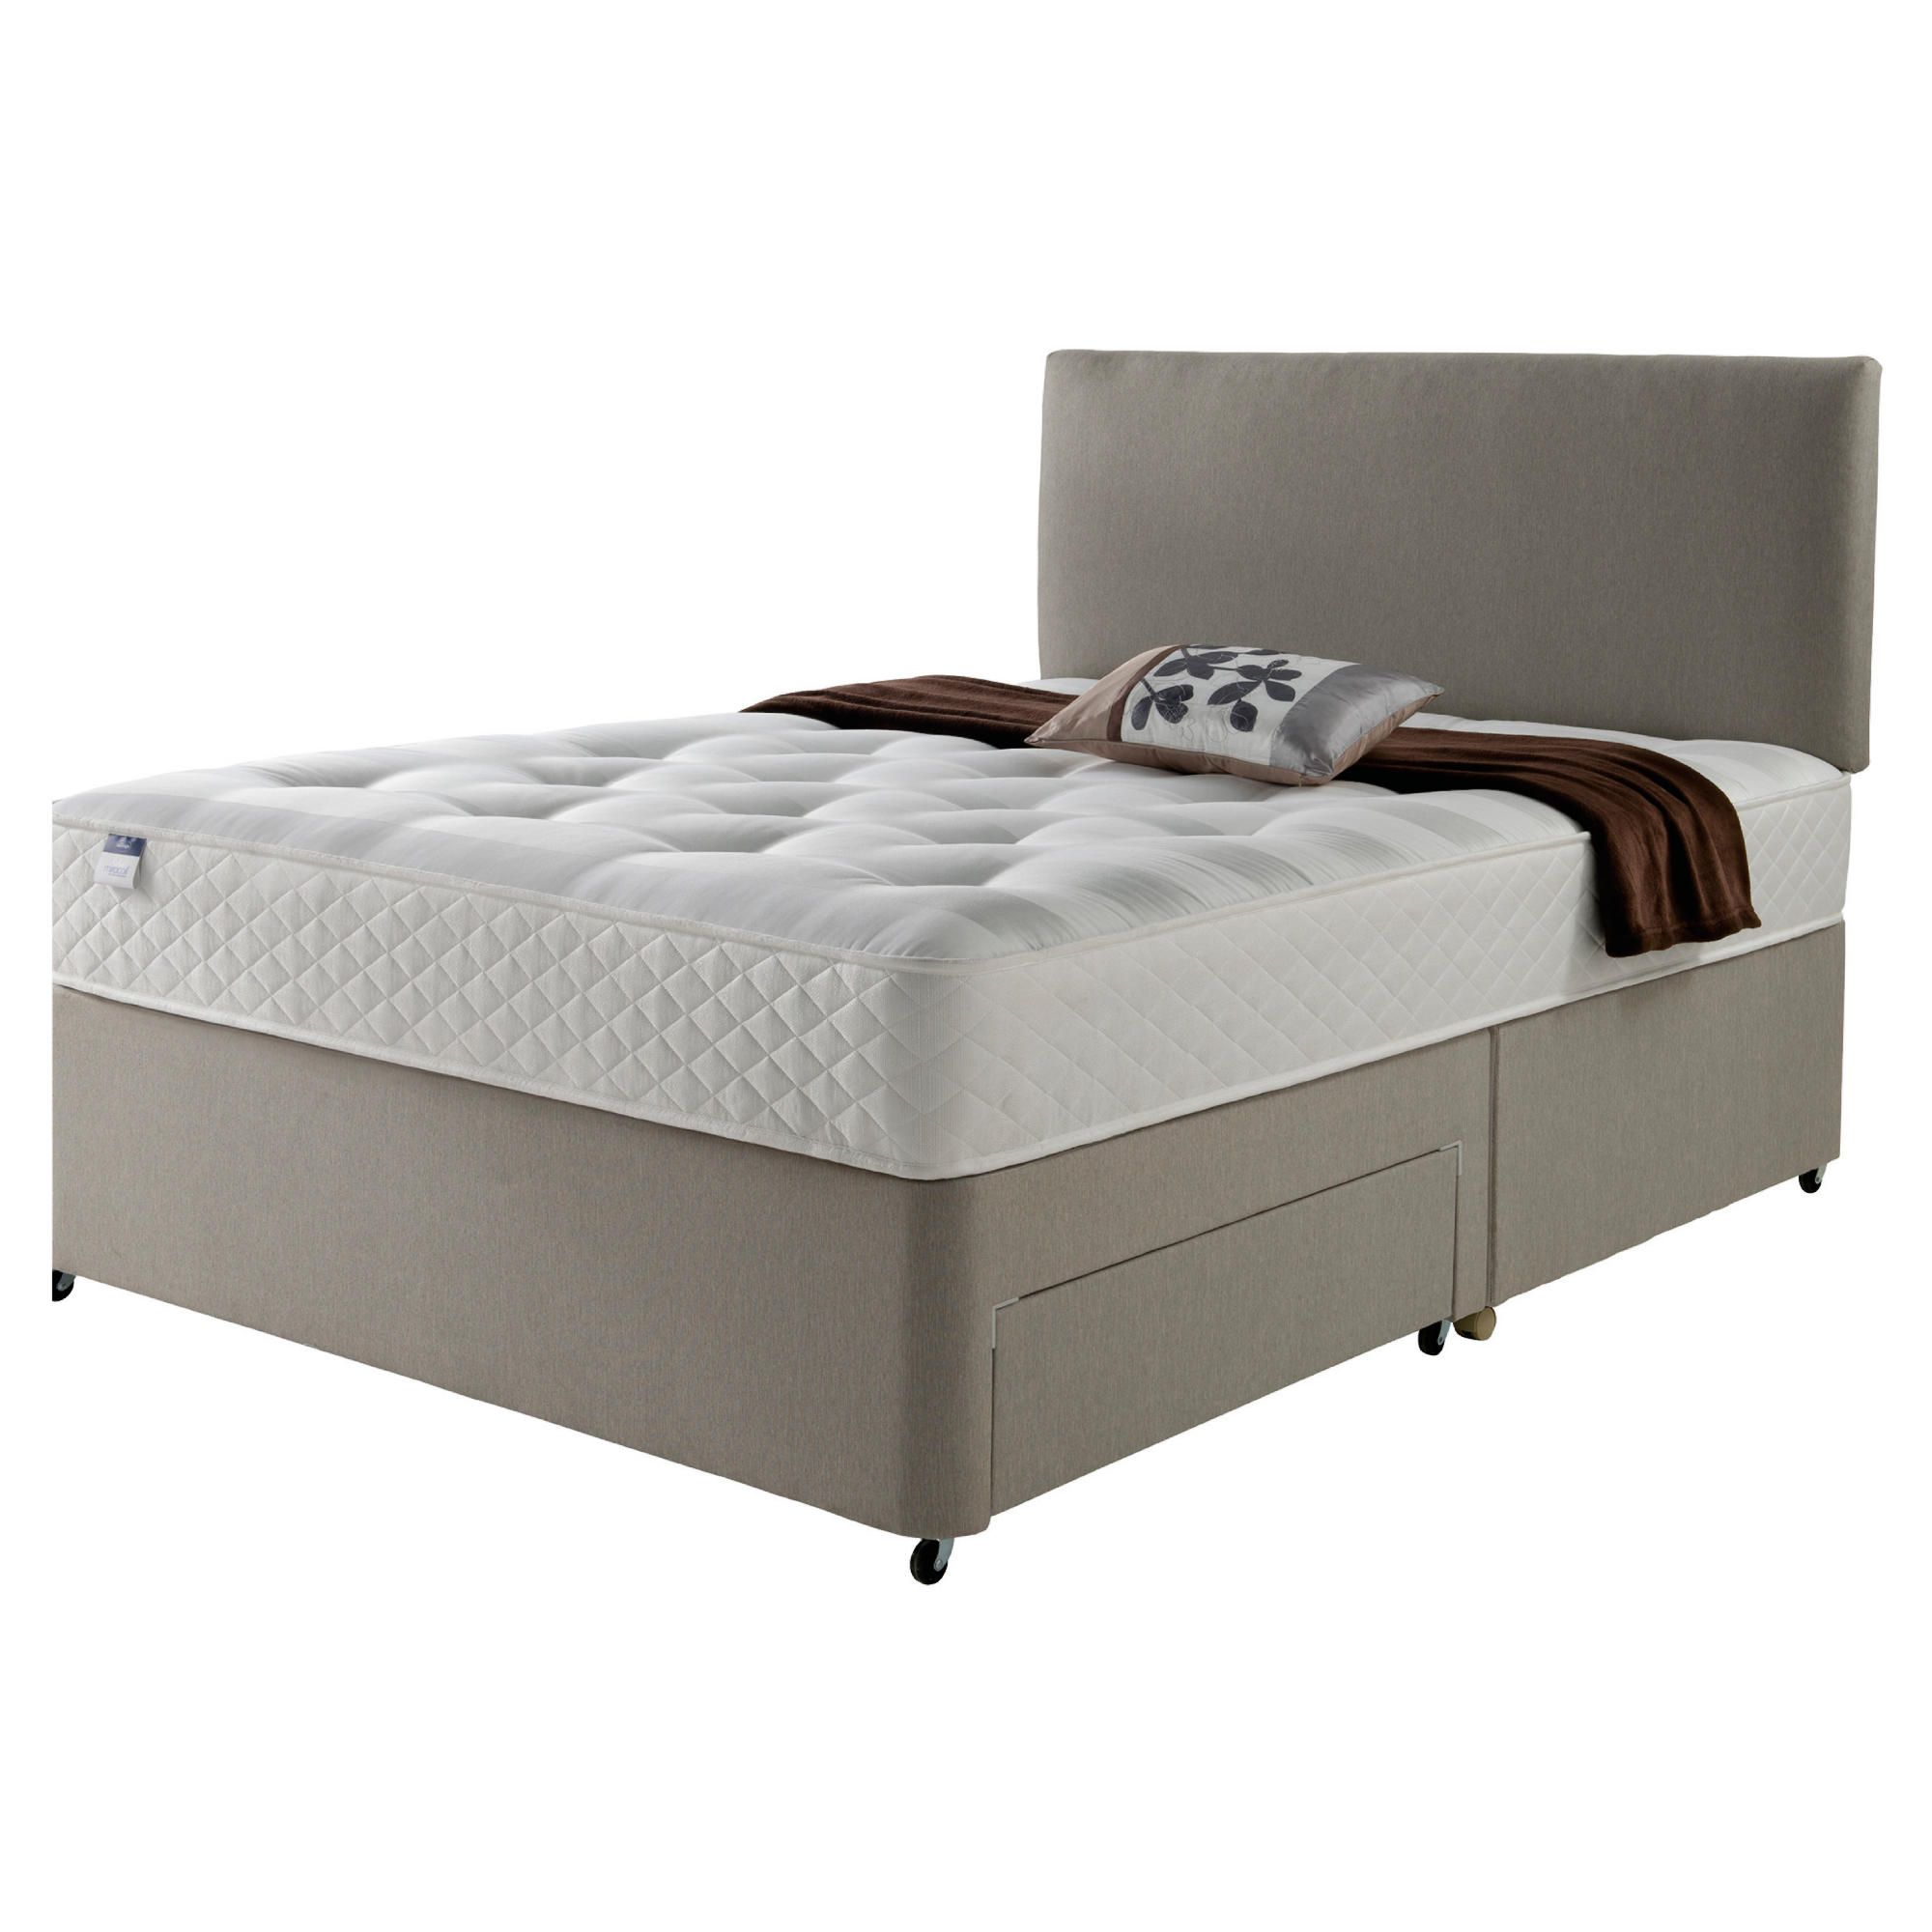 Silentnight Miracoil Luxury Ortho Tuft Non Storage Double Divan Mink with Headboard at Tescos Direct